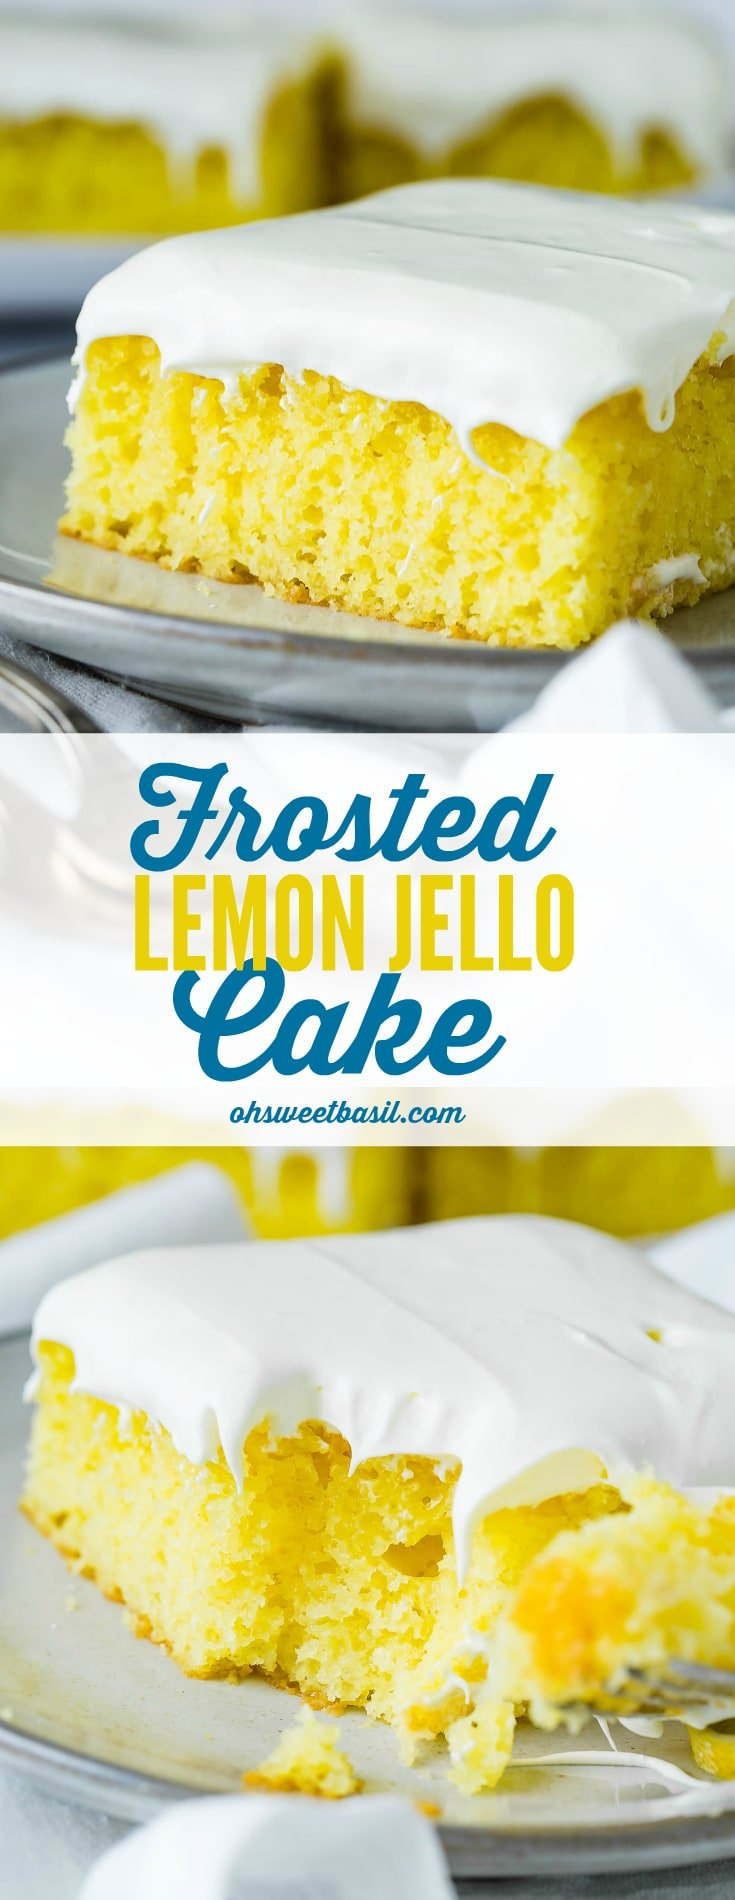 A slice of frosted lemon jello cake with two round slices of lemon on a serving plate. There is a plate containing more slices in the background and white linen napkins under the plates.